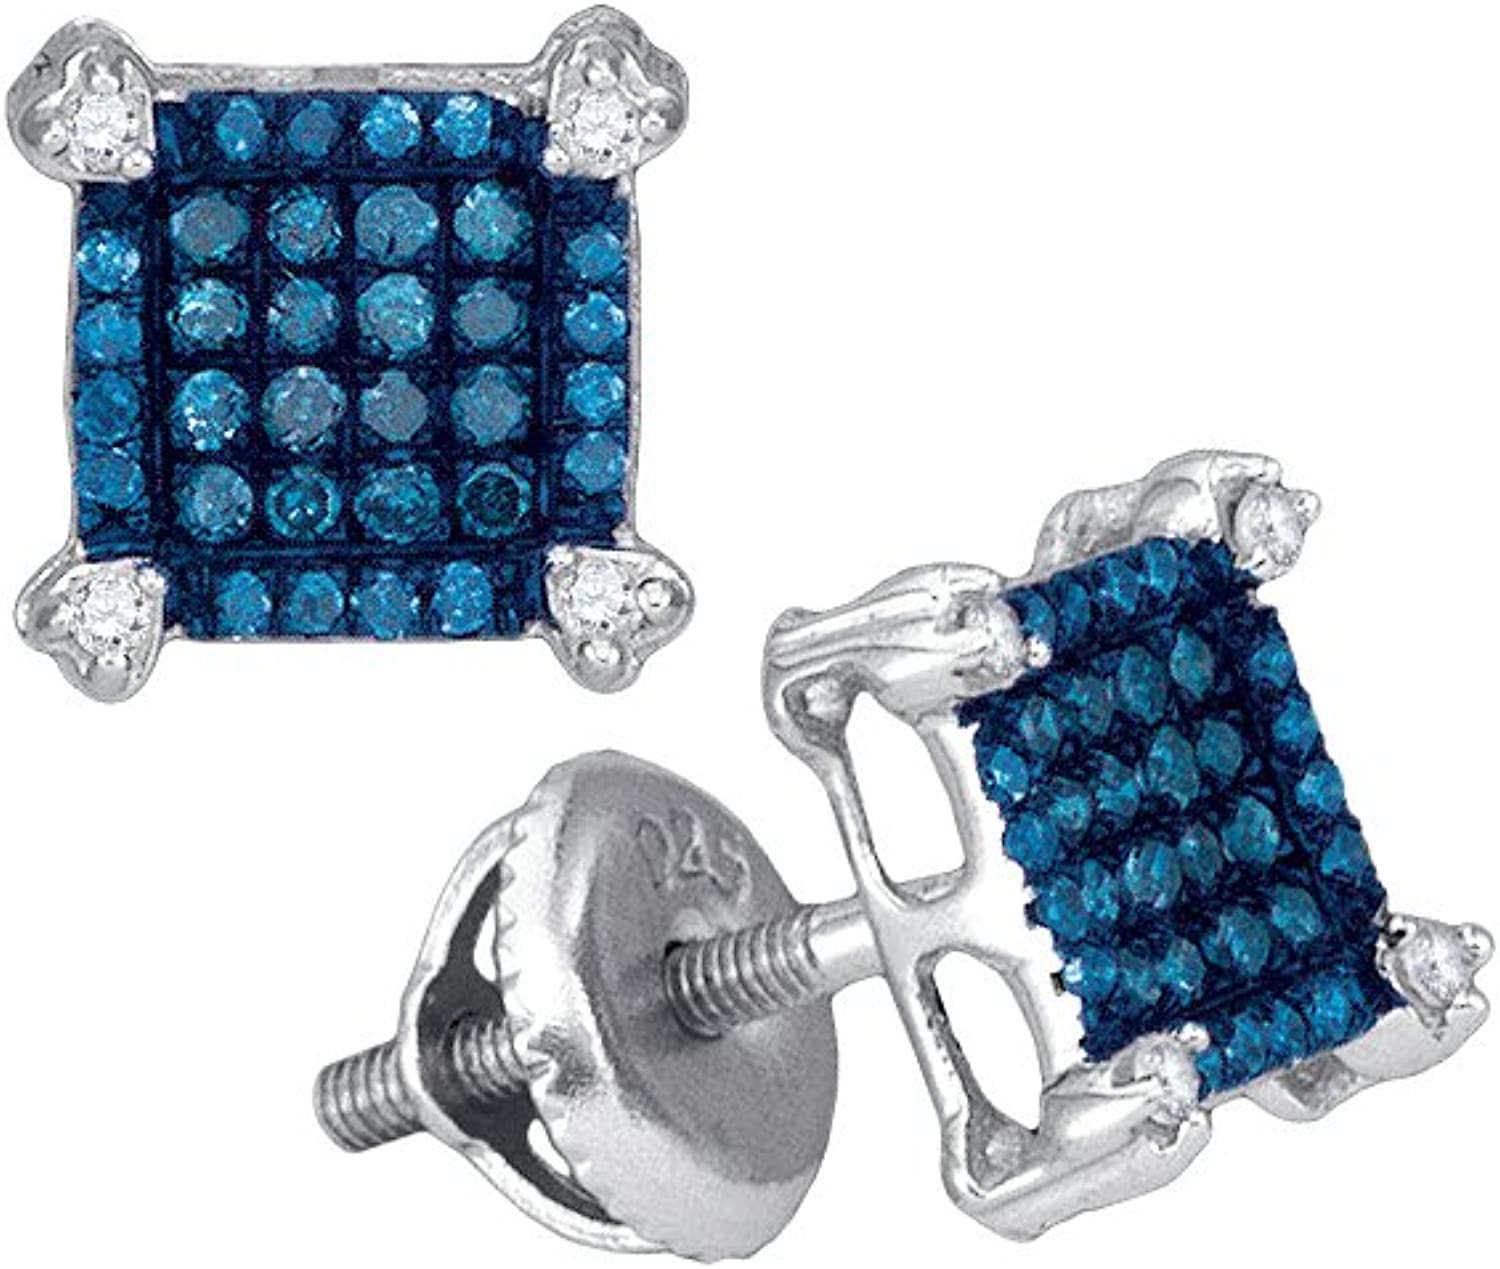 1 4 Total Carat Weight blueE DIAMOND MICROPAVE EARRING